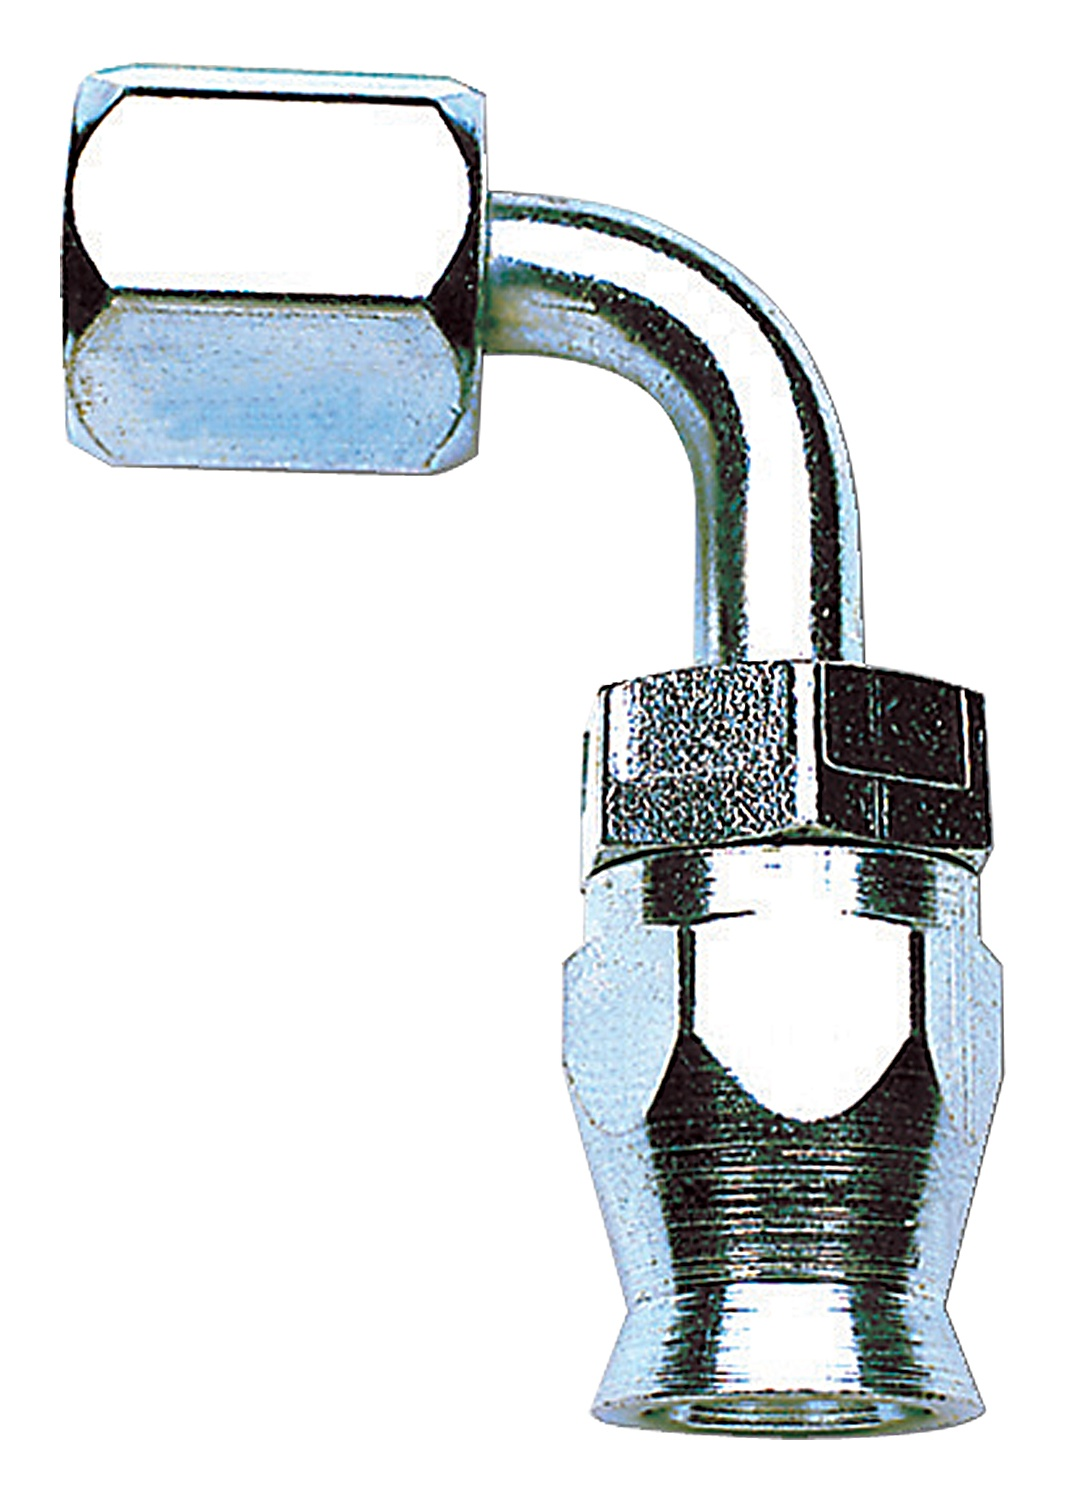 Russell 620521 - Russell Powerflex AN Hose End Fittings